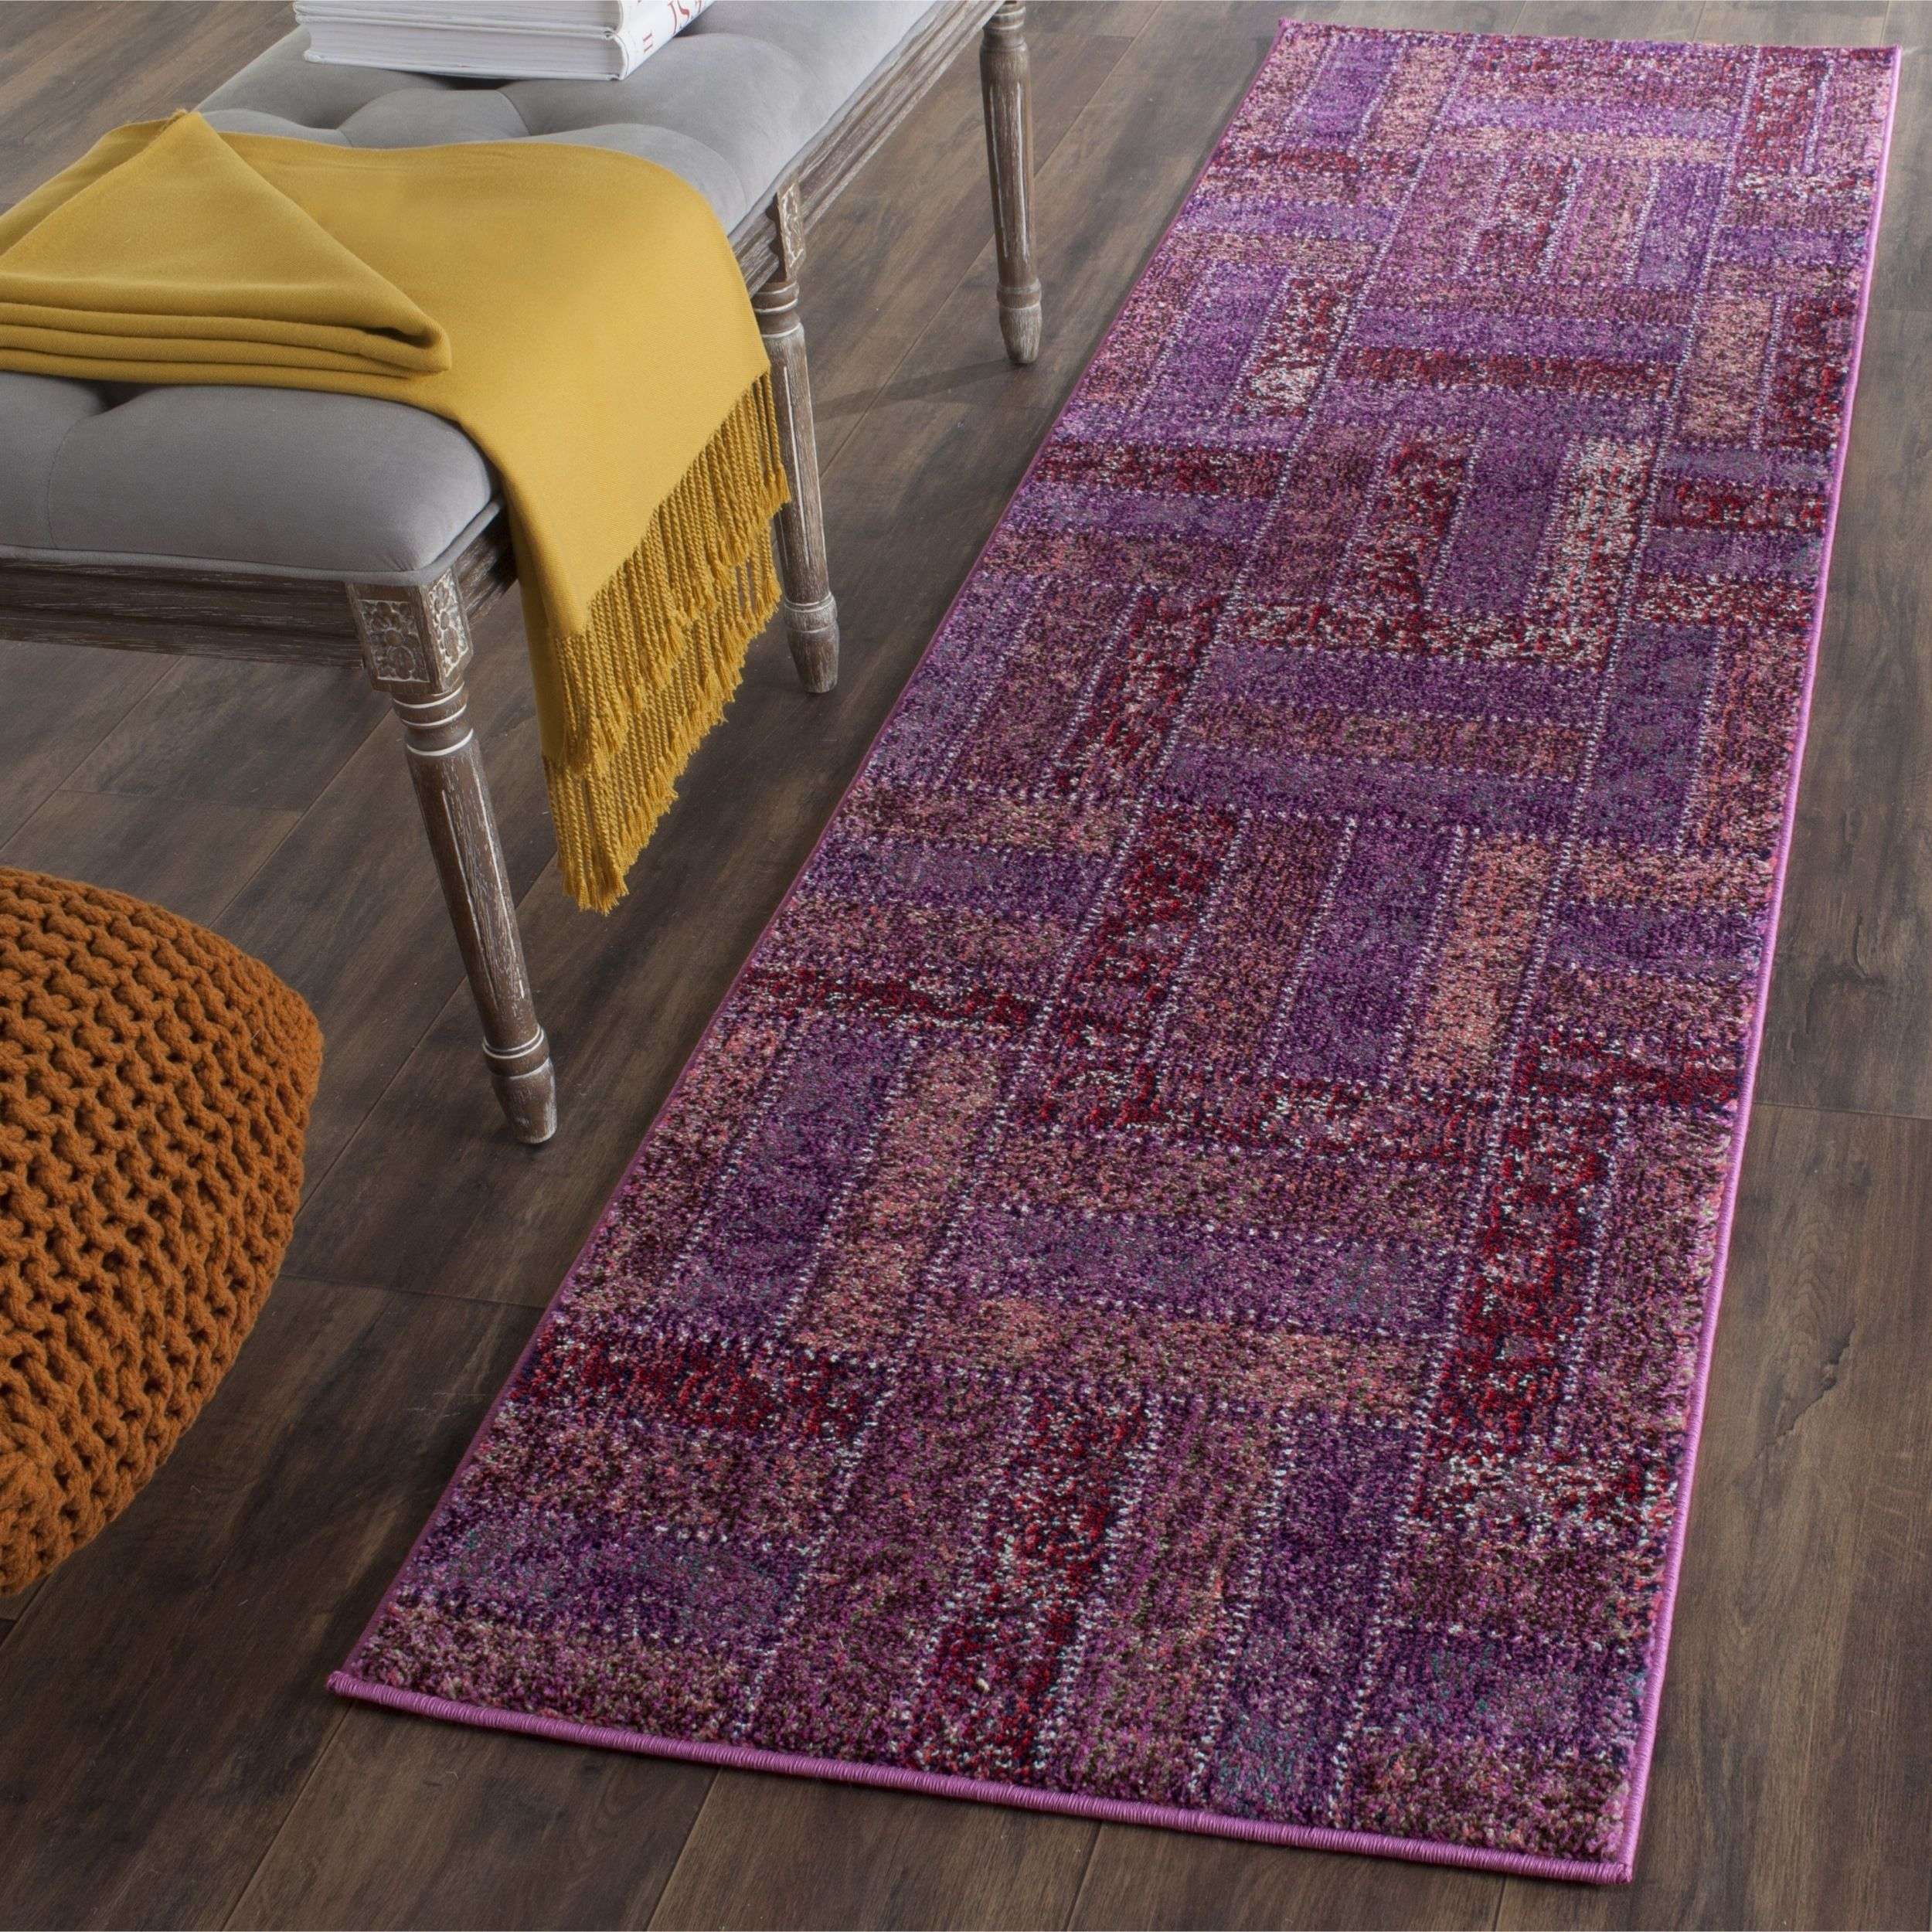 Safavieh Monaco Myrthe Boho Rug Purple Area Rugs White Area Rug